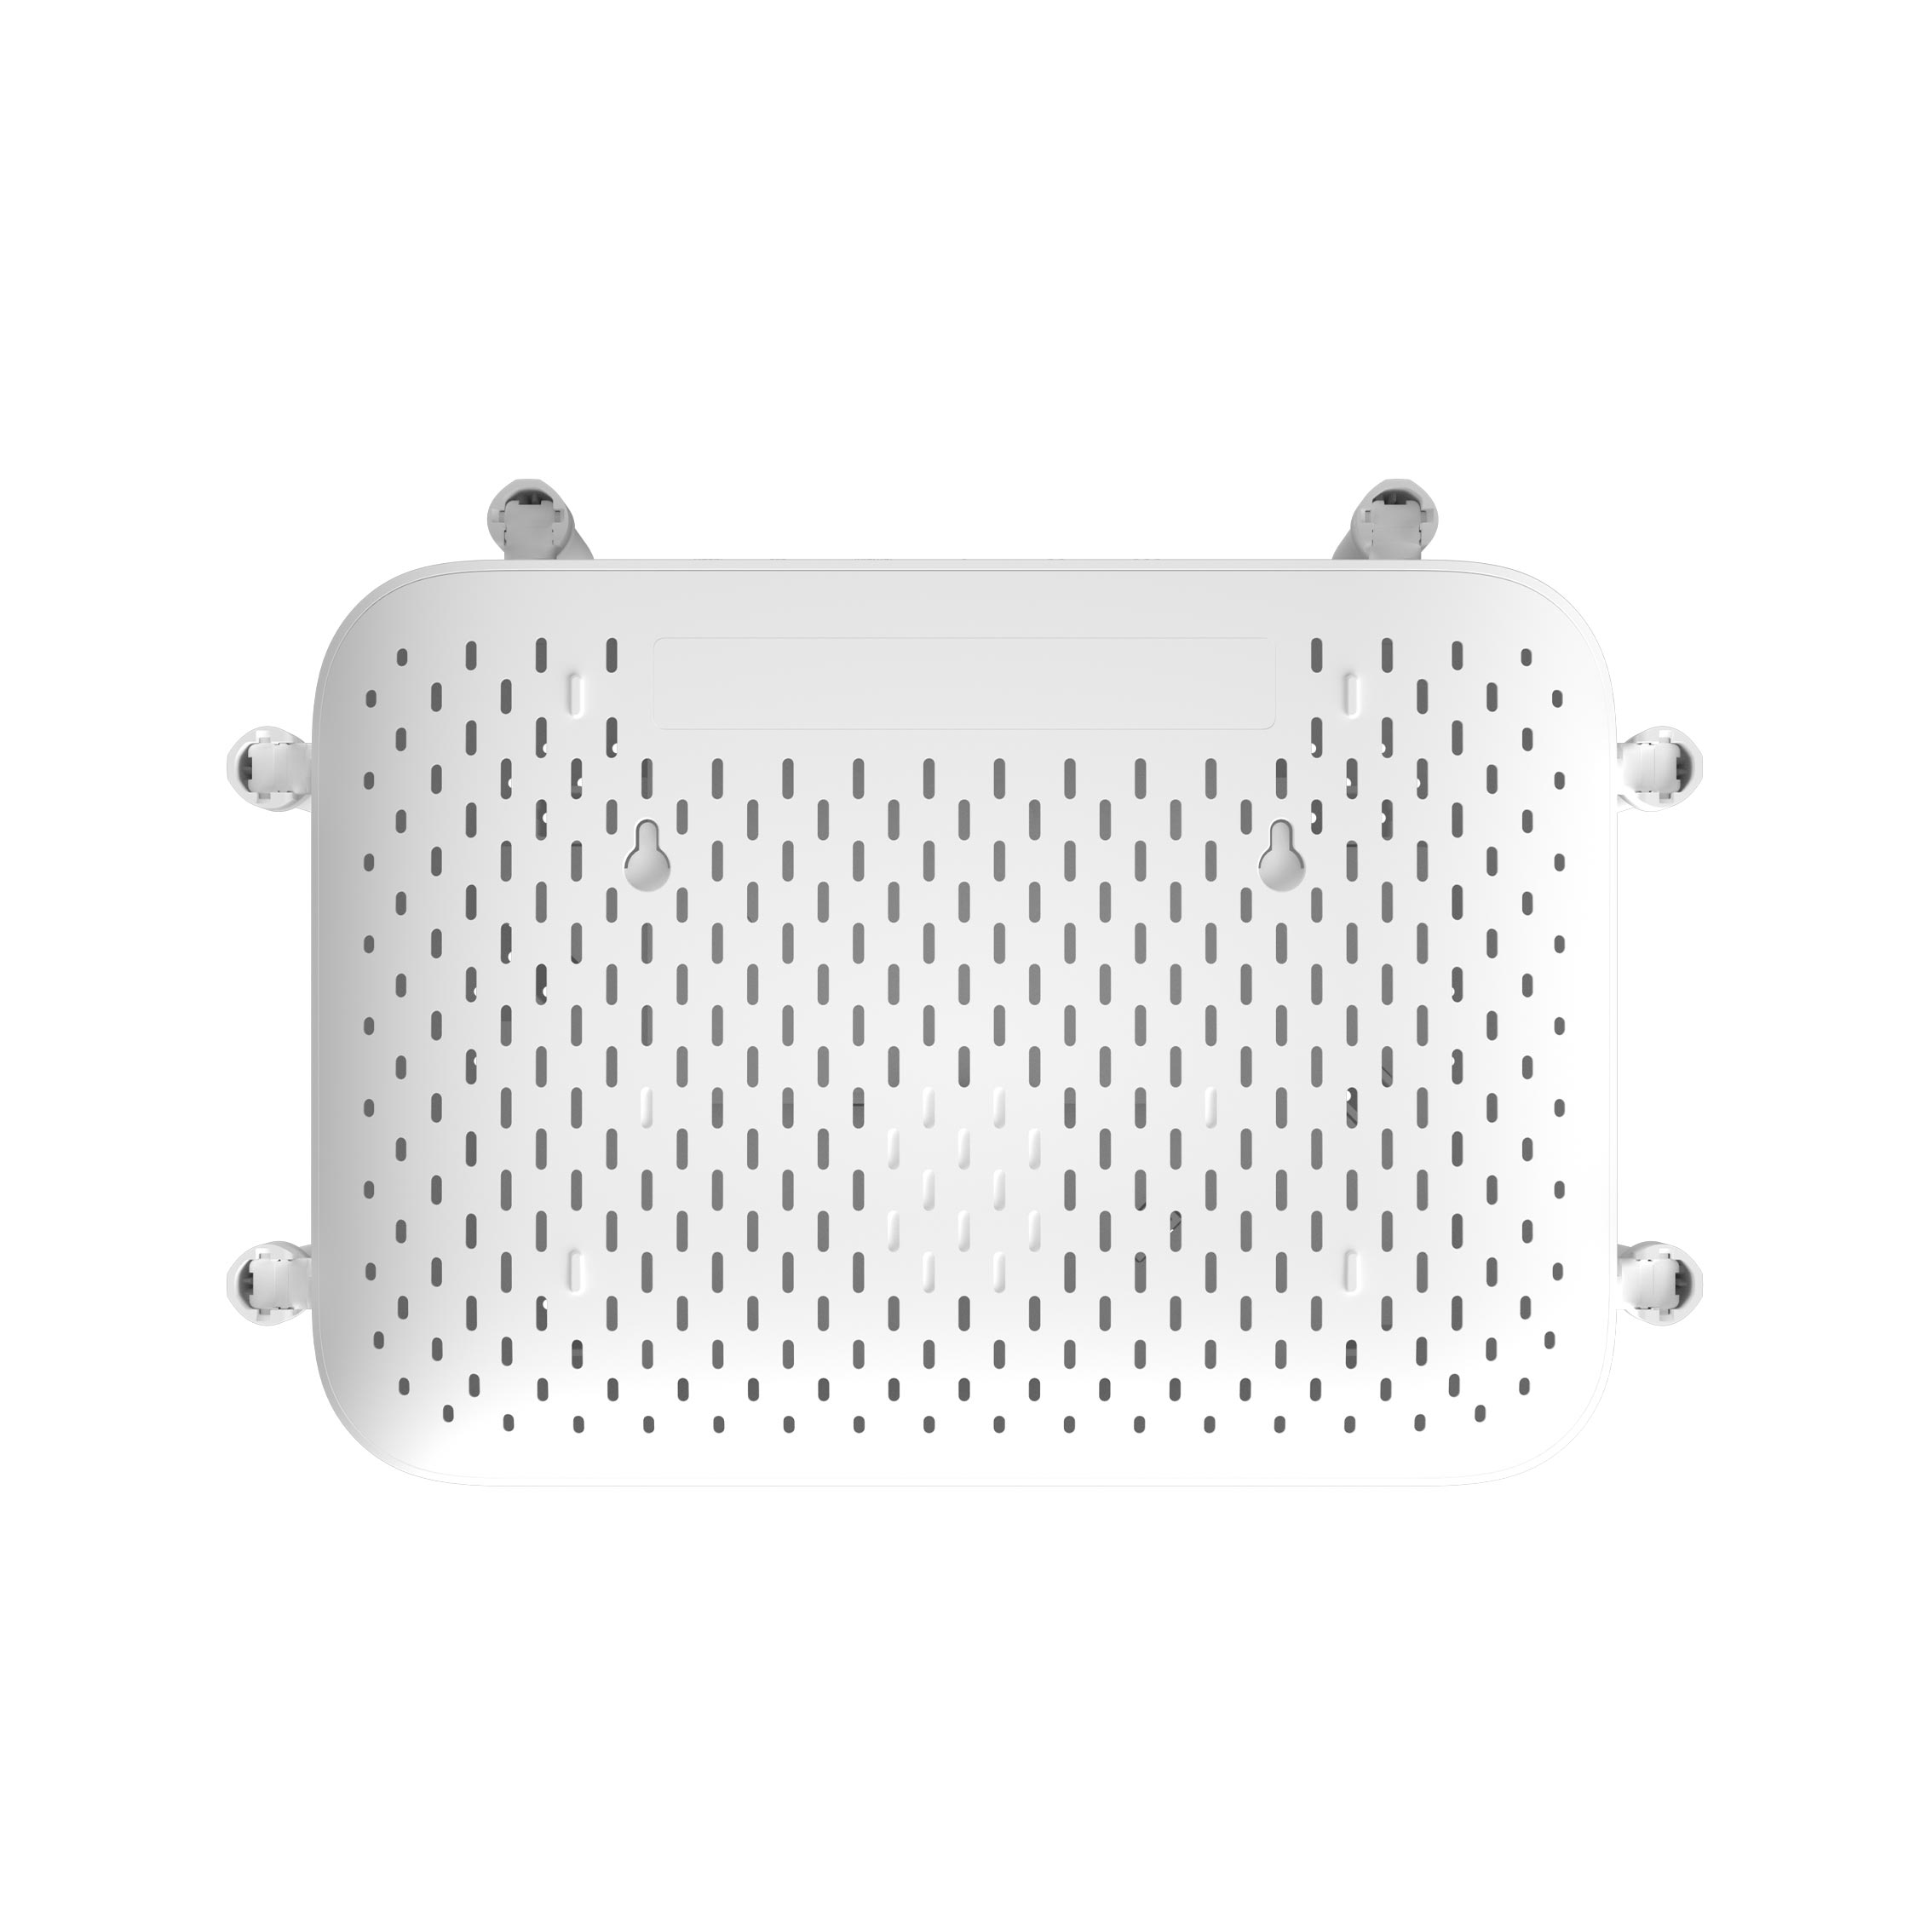 Xiaomi Redmi AC2100 Wireless Router with Gigabit and Dual-Band Repeater along with 6 High Gain Antennas and Wider Coverage 4